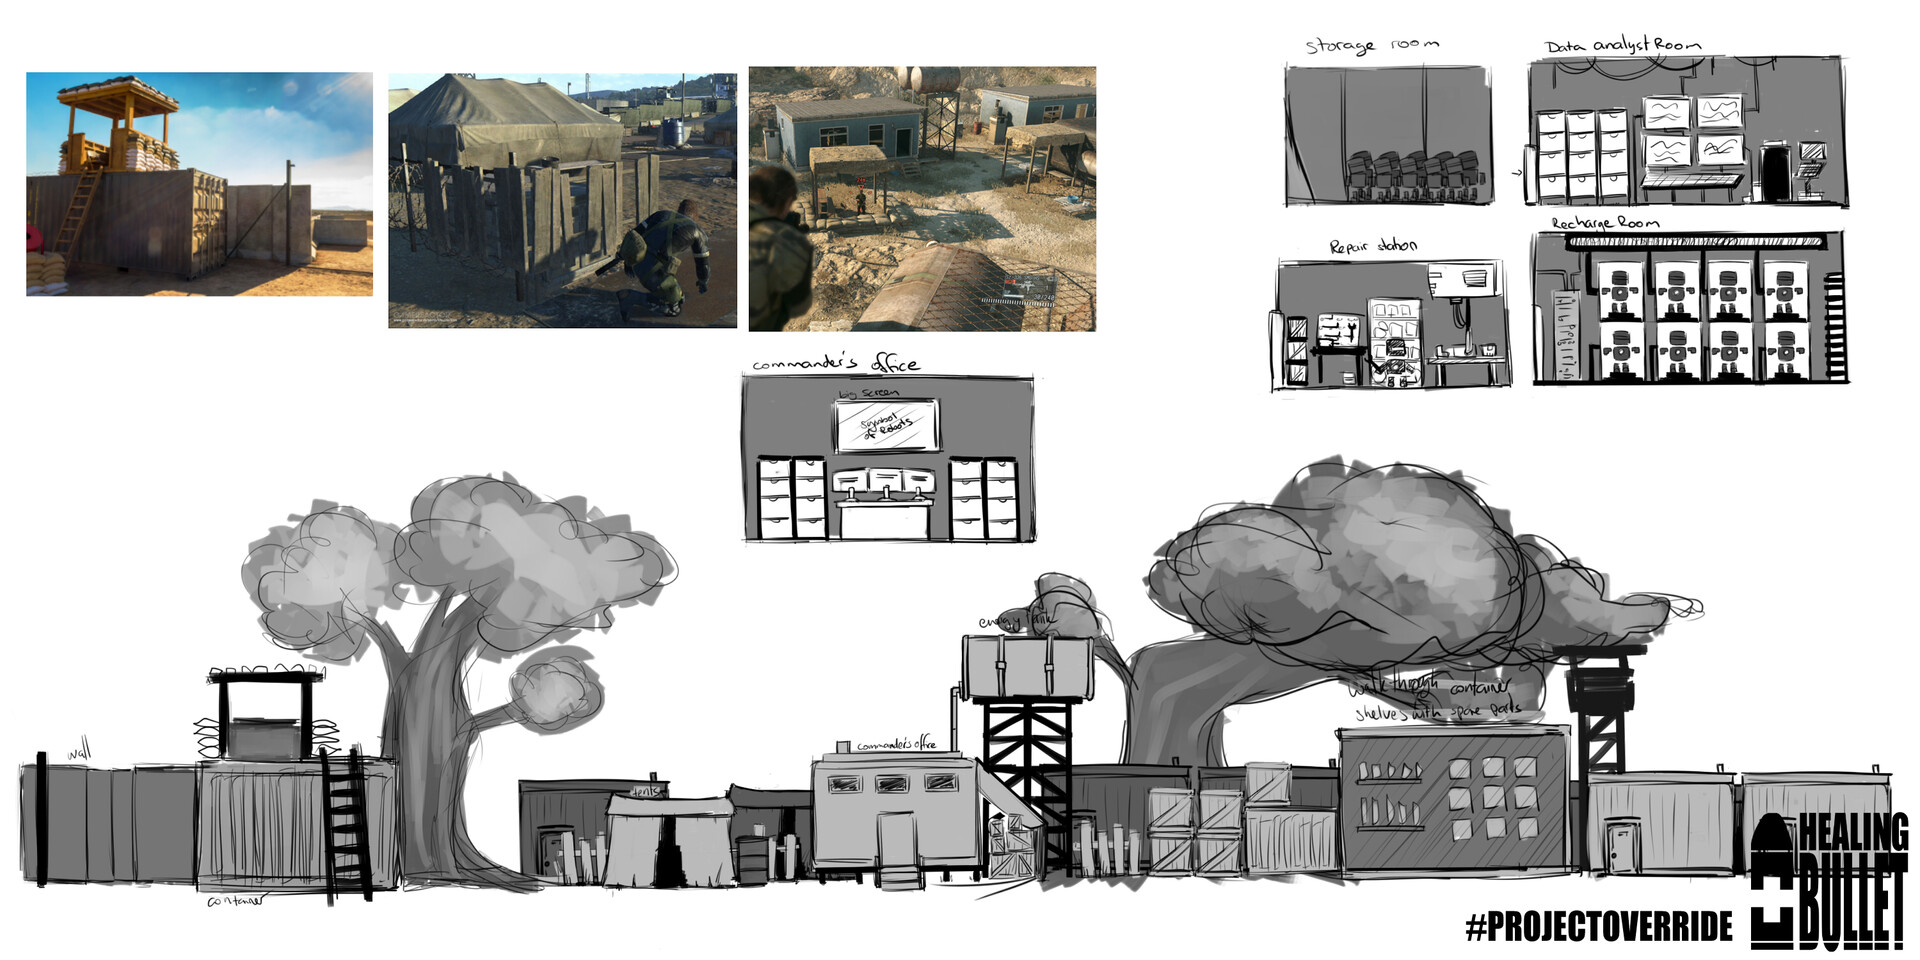 References for camp elements from Metal Gear Solid V - Phantom Pain